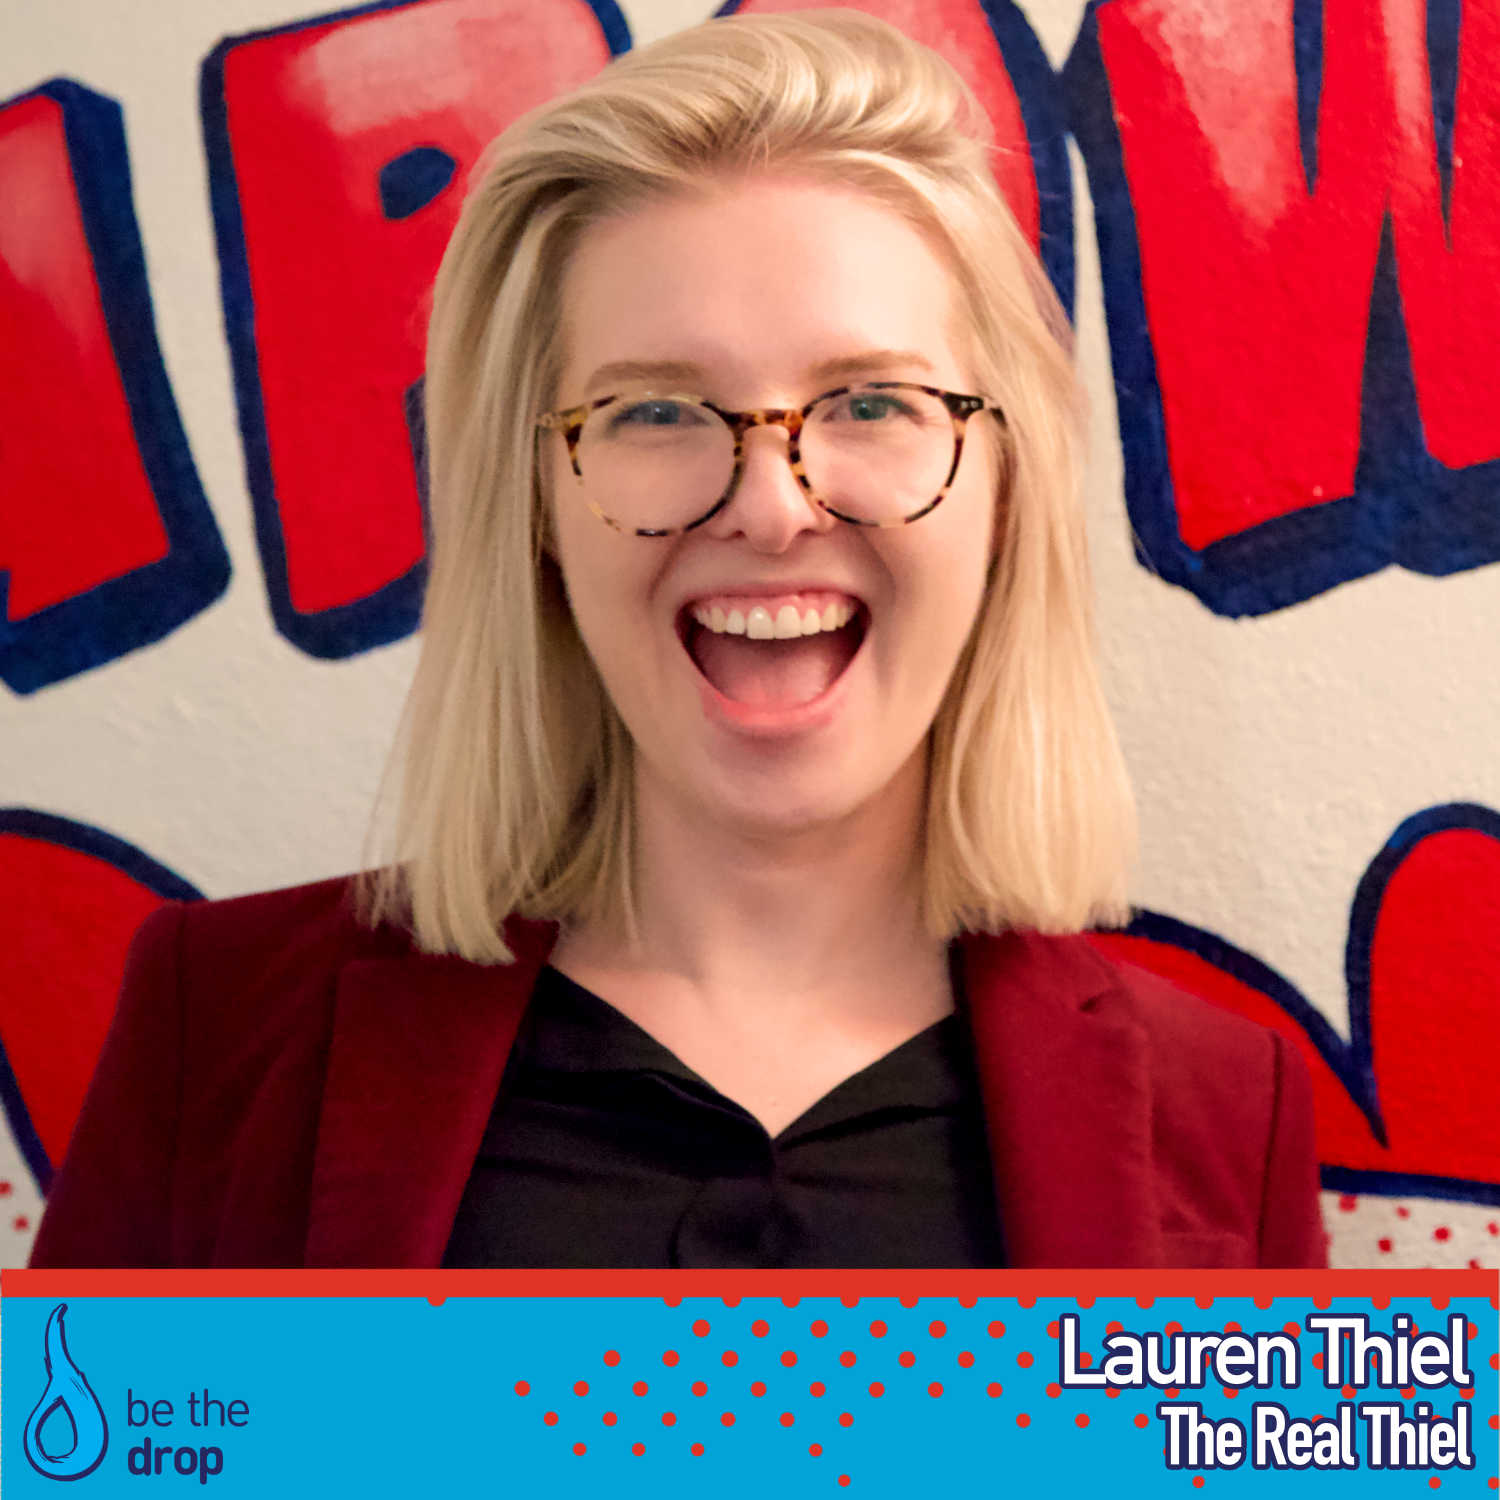 Lauren Thiel discusses accounting for creative business